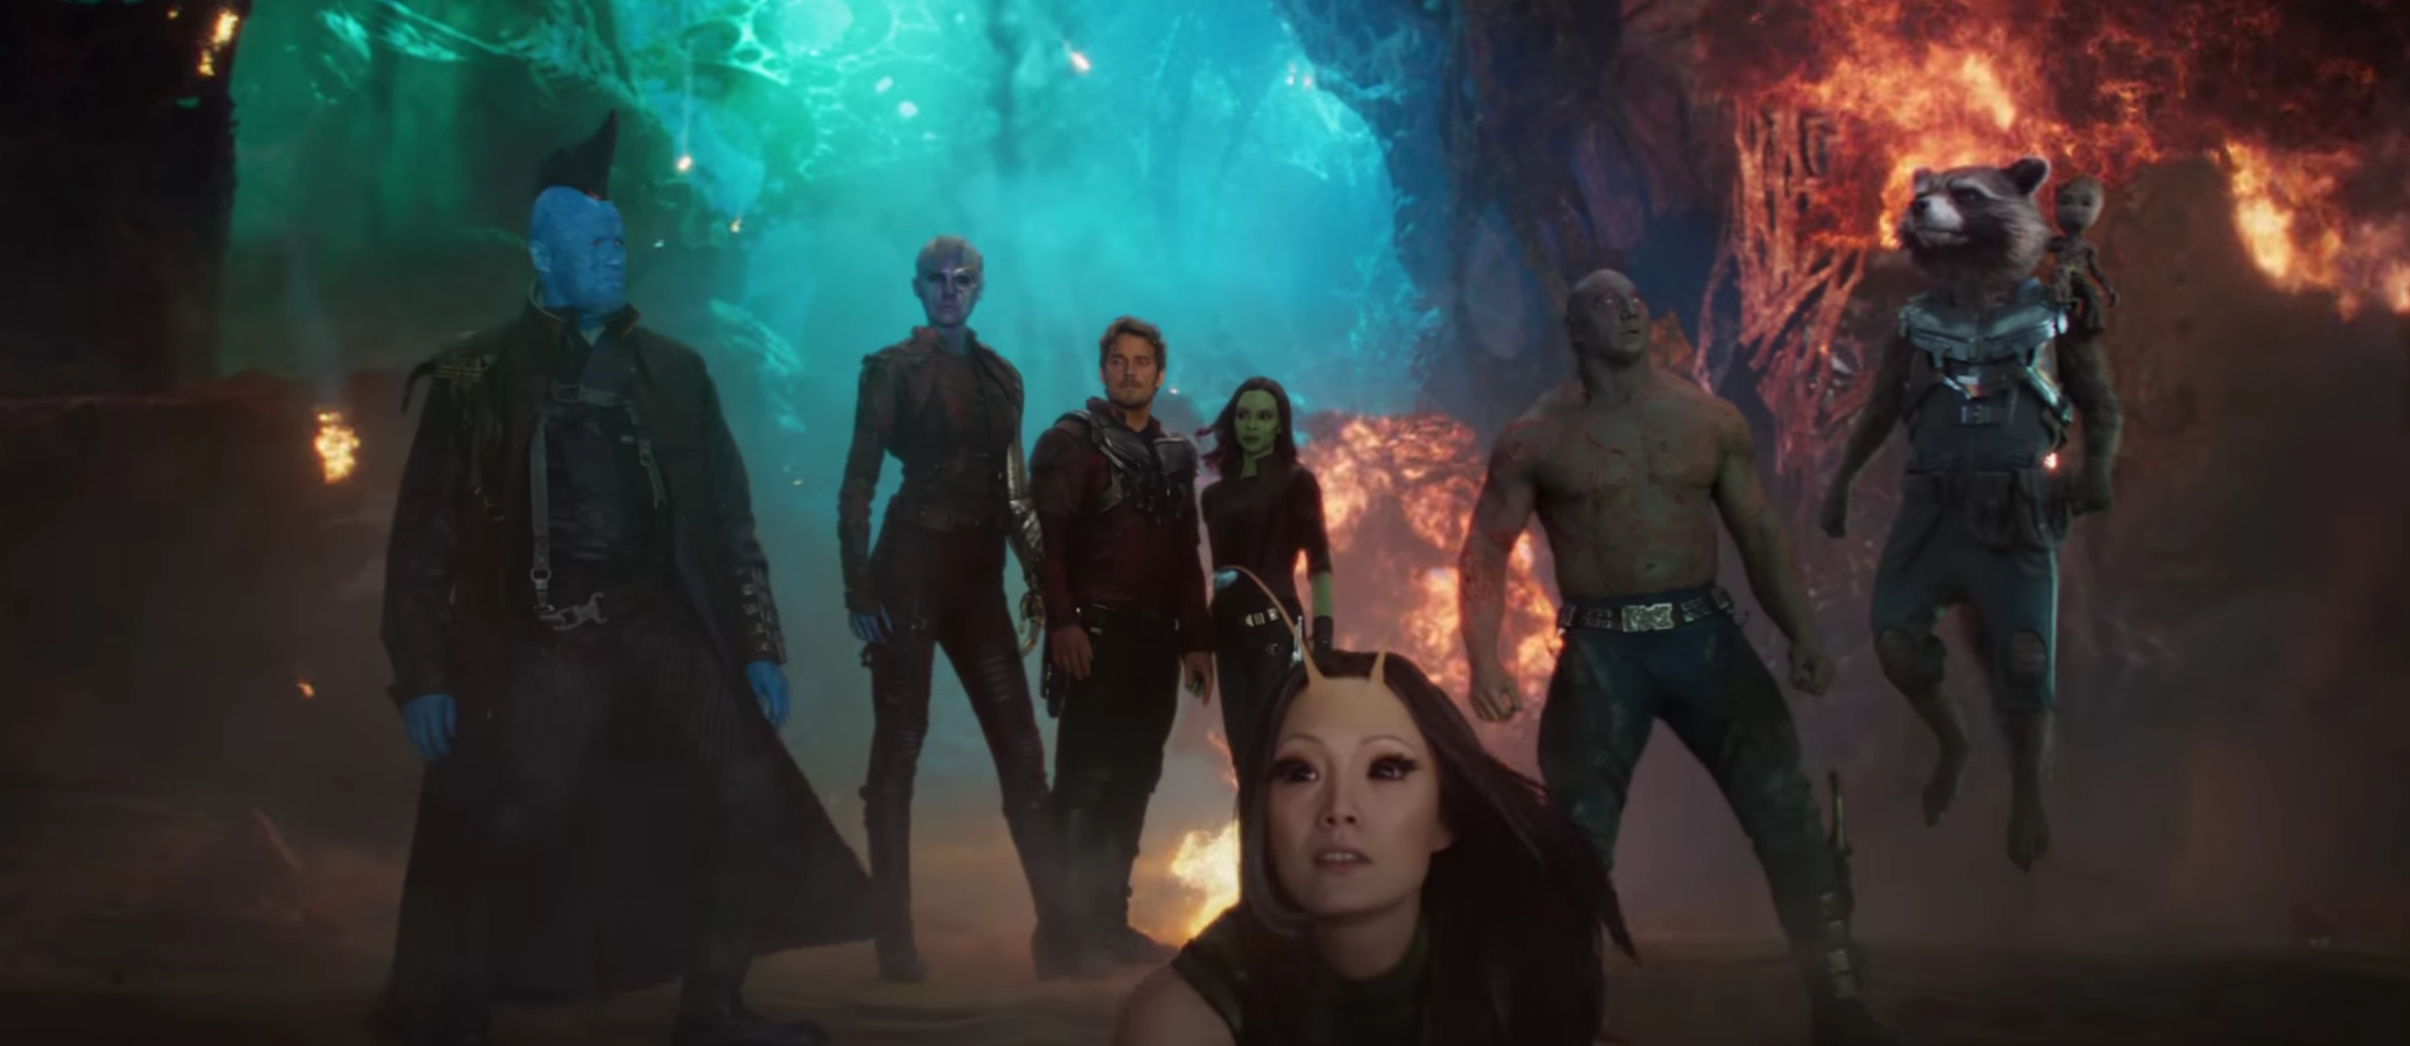 There's a lot more to see in new 'Guardians Of The Galaxy Vol. 2' trailer